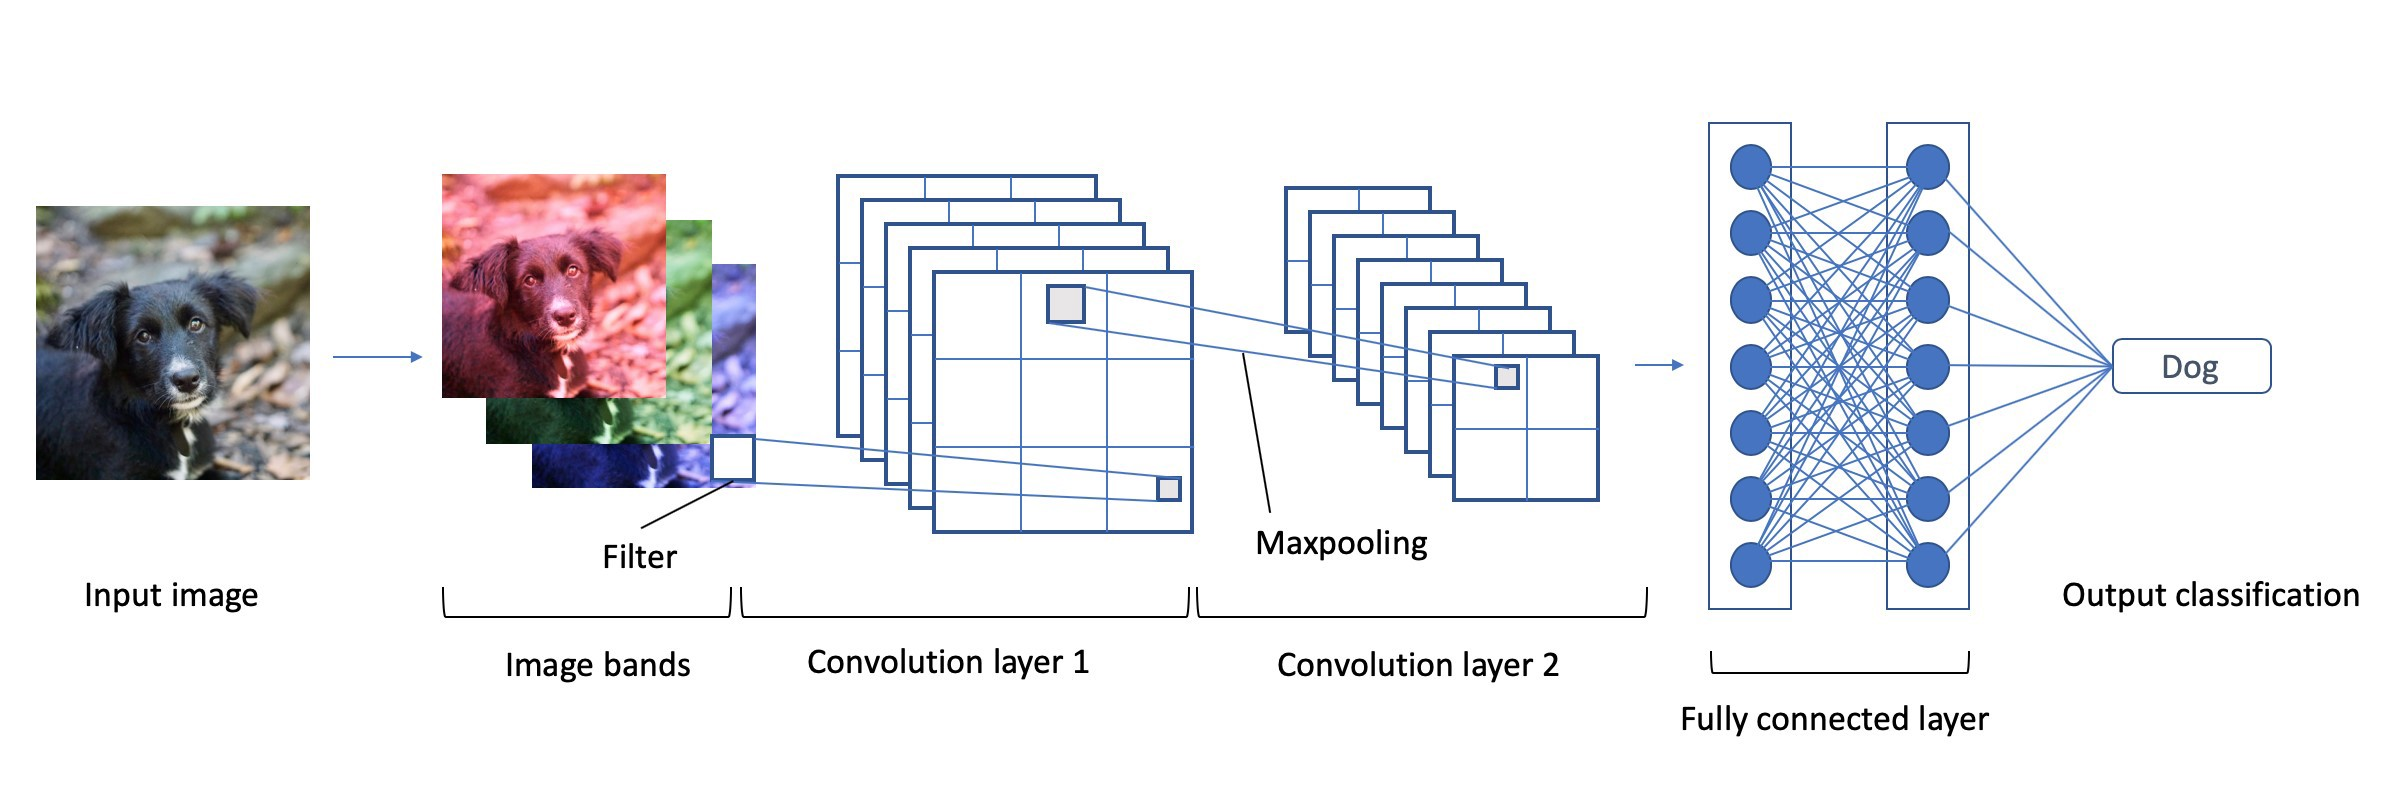 Convolutional neural network for image classification